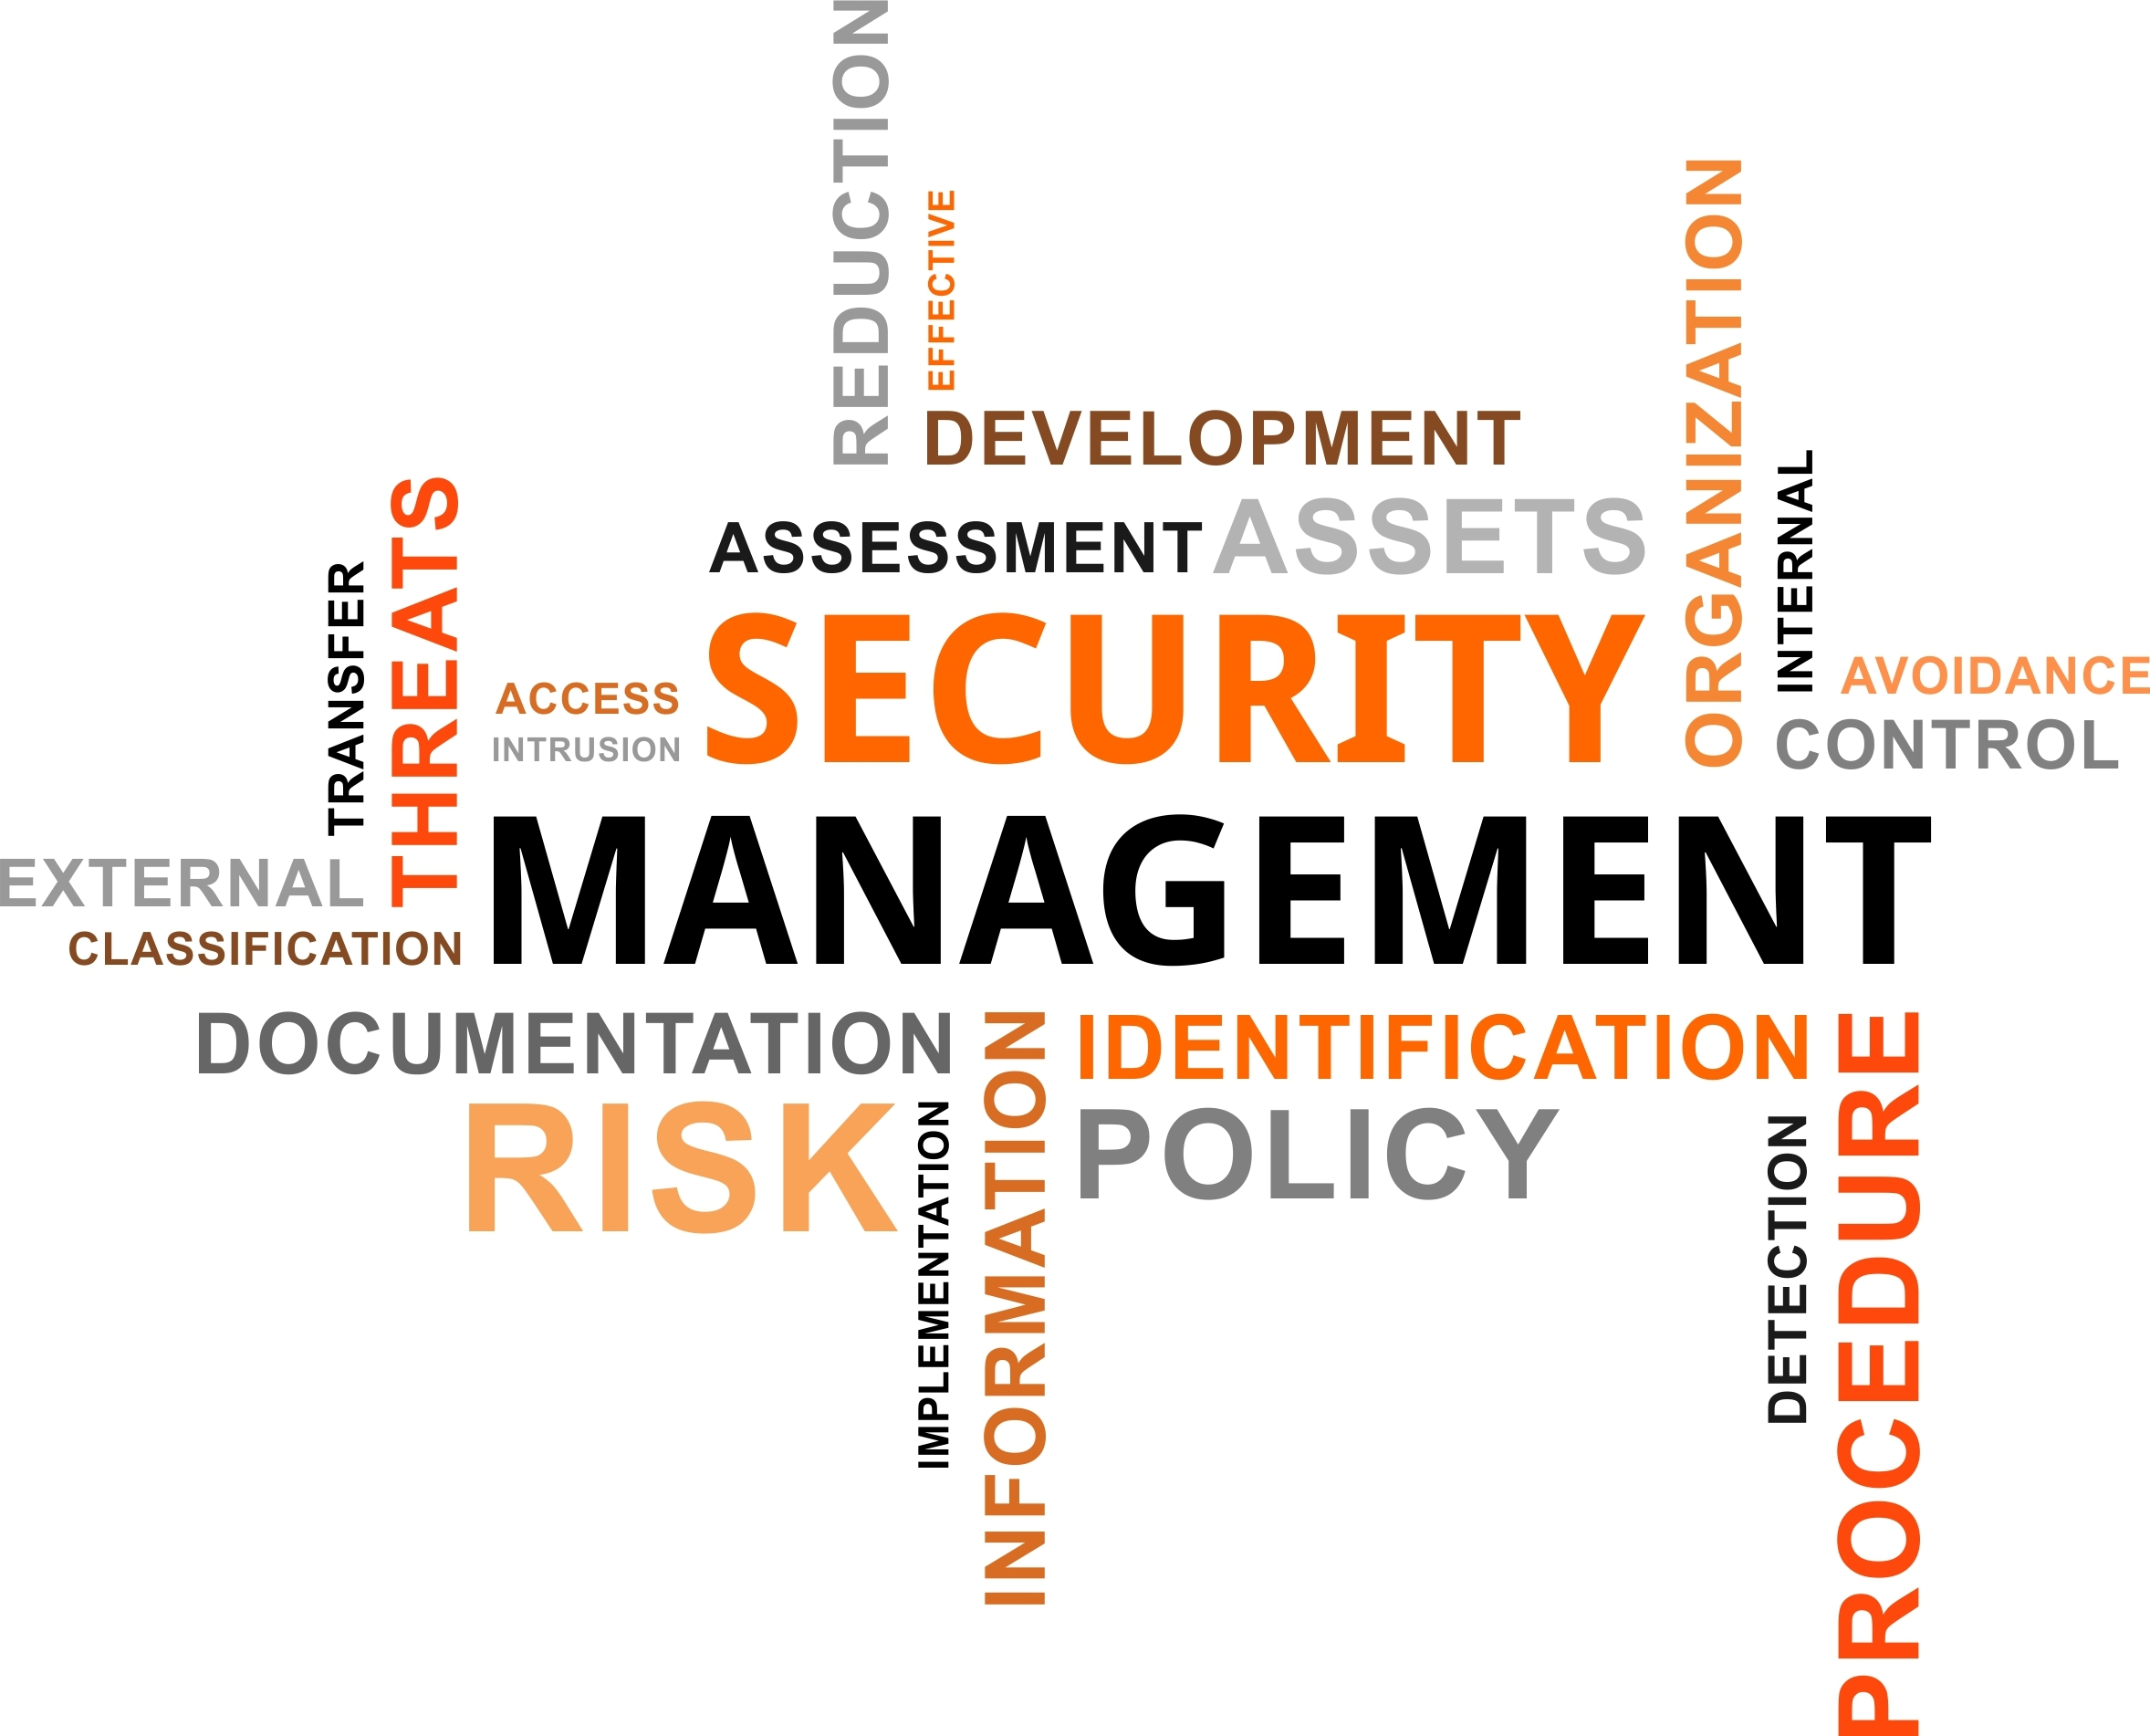 security management Microsoft security management provides cloud security solutions and tools to understand your company's security state and prevent threats.